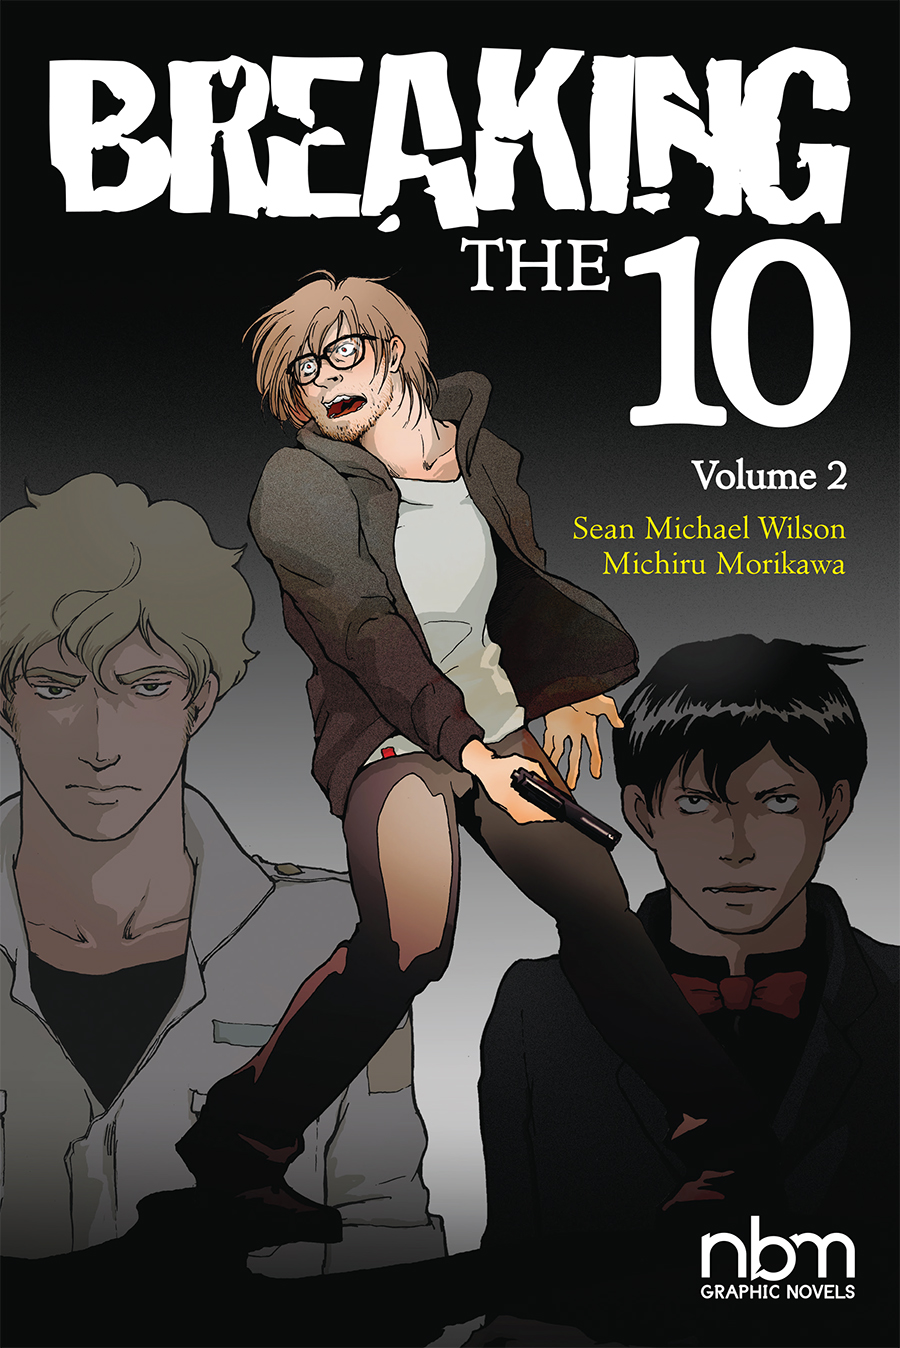 Breaking the 10 – is cool!